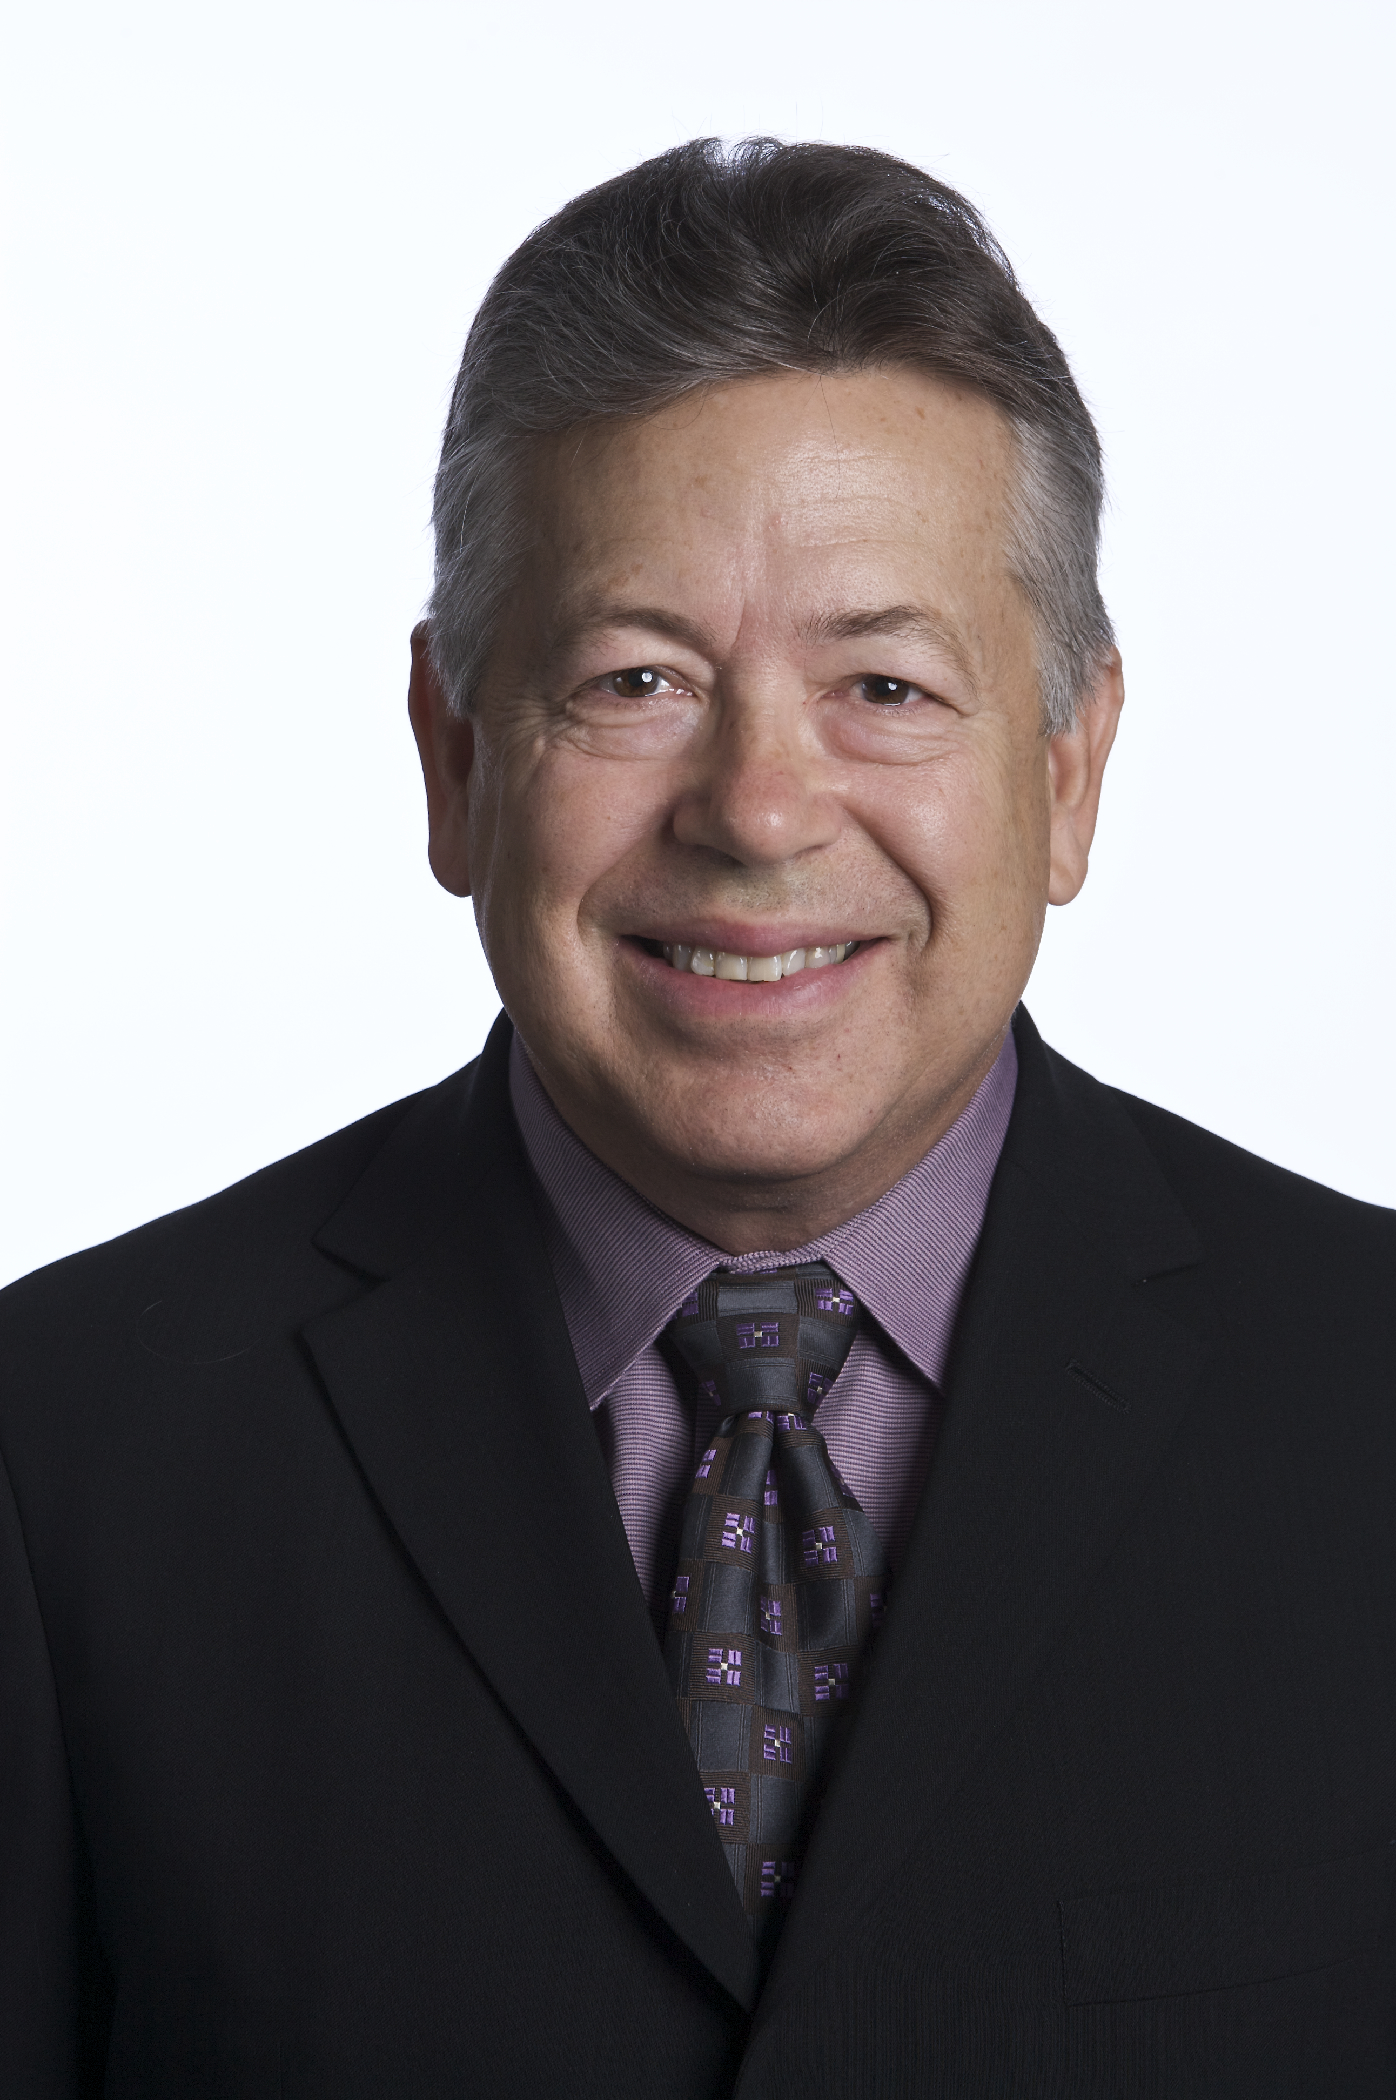 Bruce Toal, CEO, President, Co-Founder Convey Computer